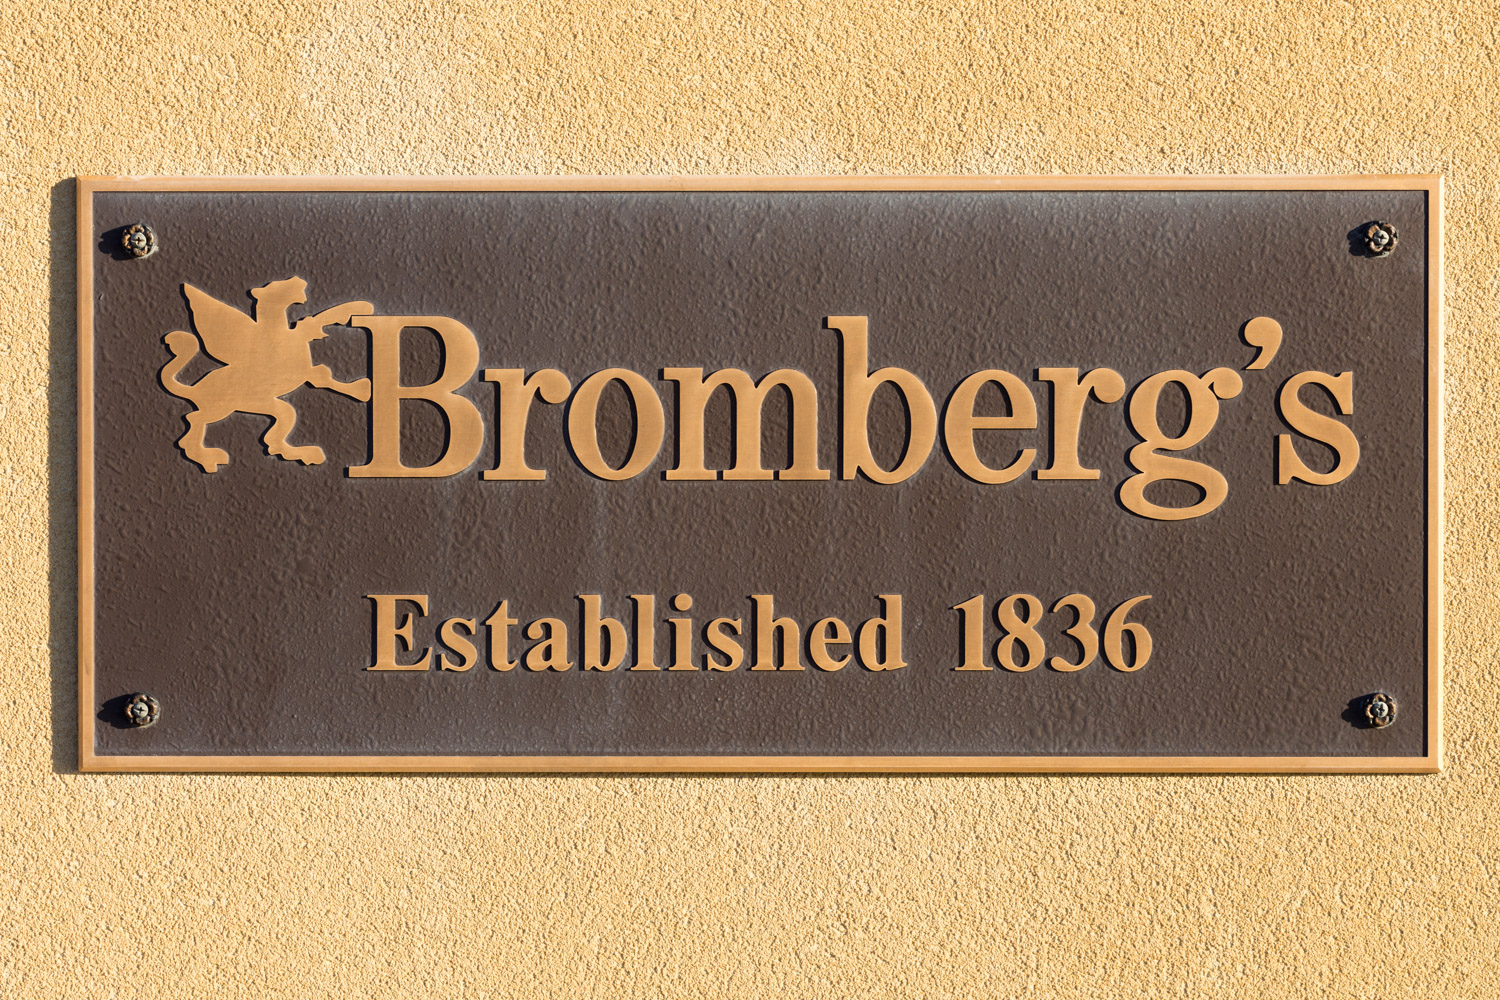 Brombergs - Birmingham AL Jewelry Store - Google Virtual Tour2522.jpg